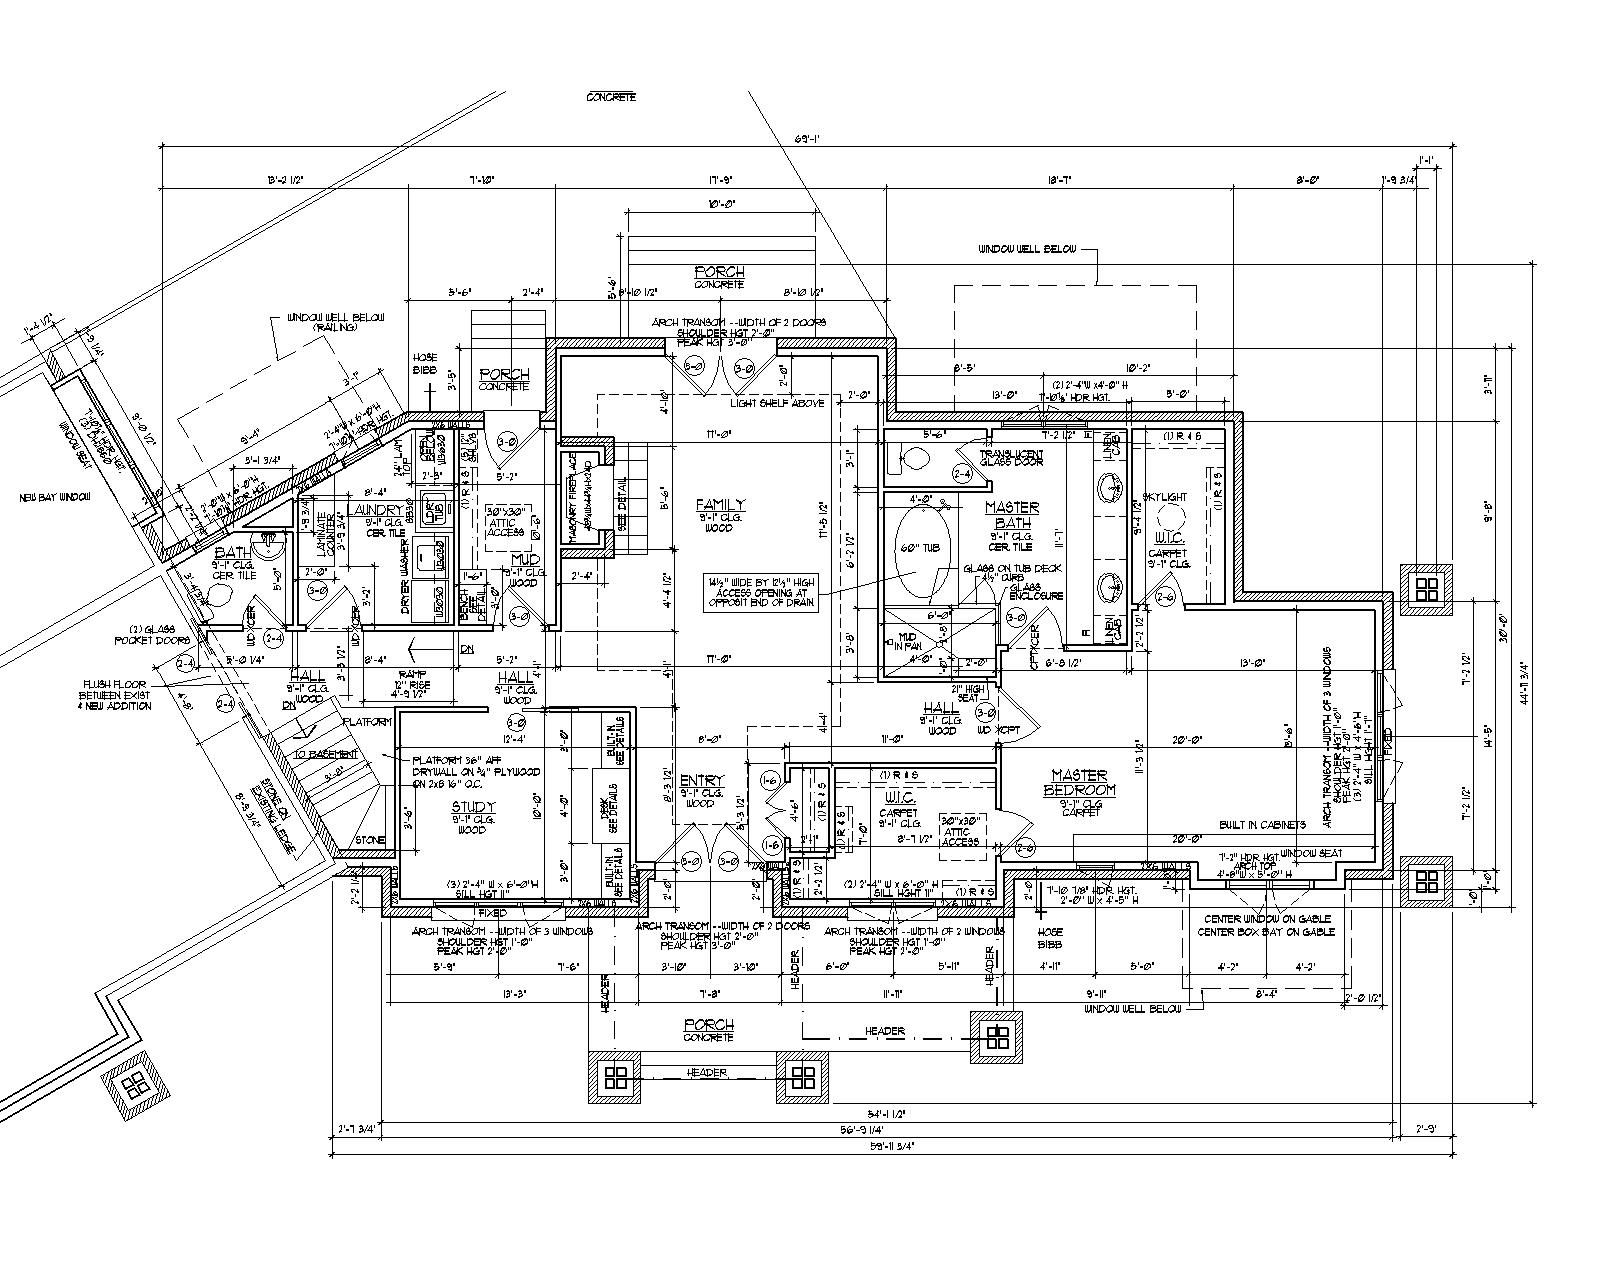 House blueprint architectural plans architect drawings for Commercial building blueprints free